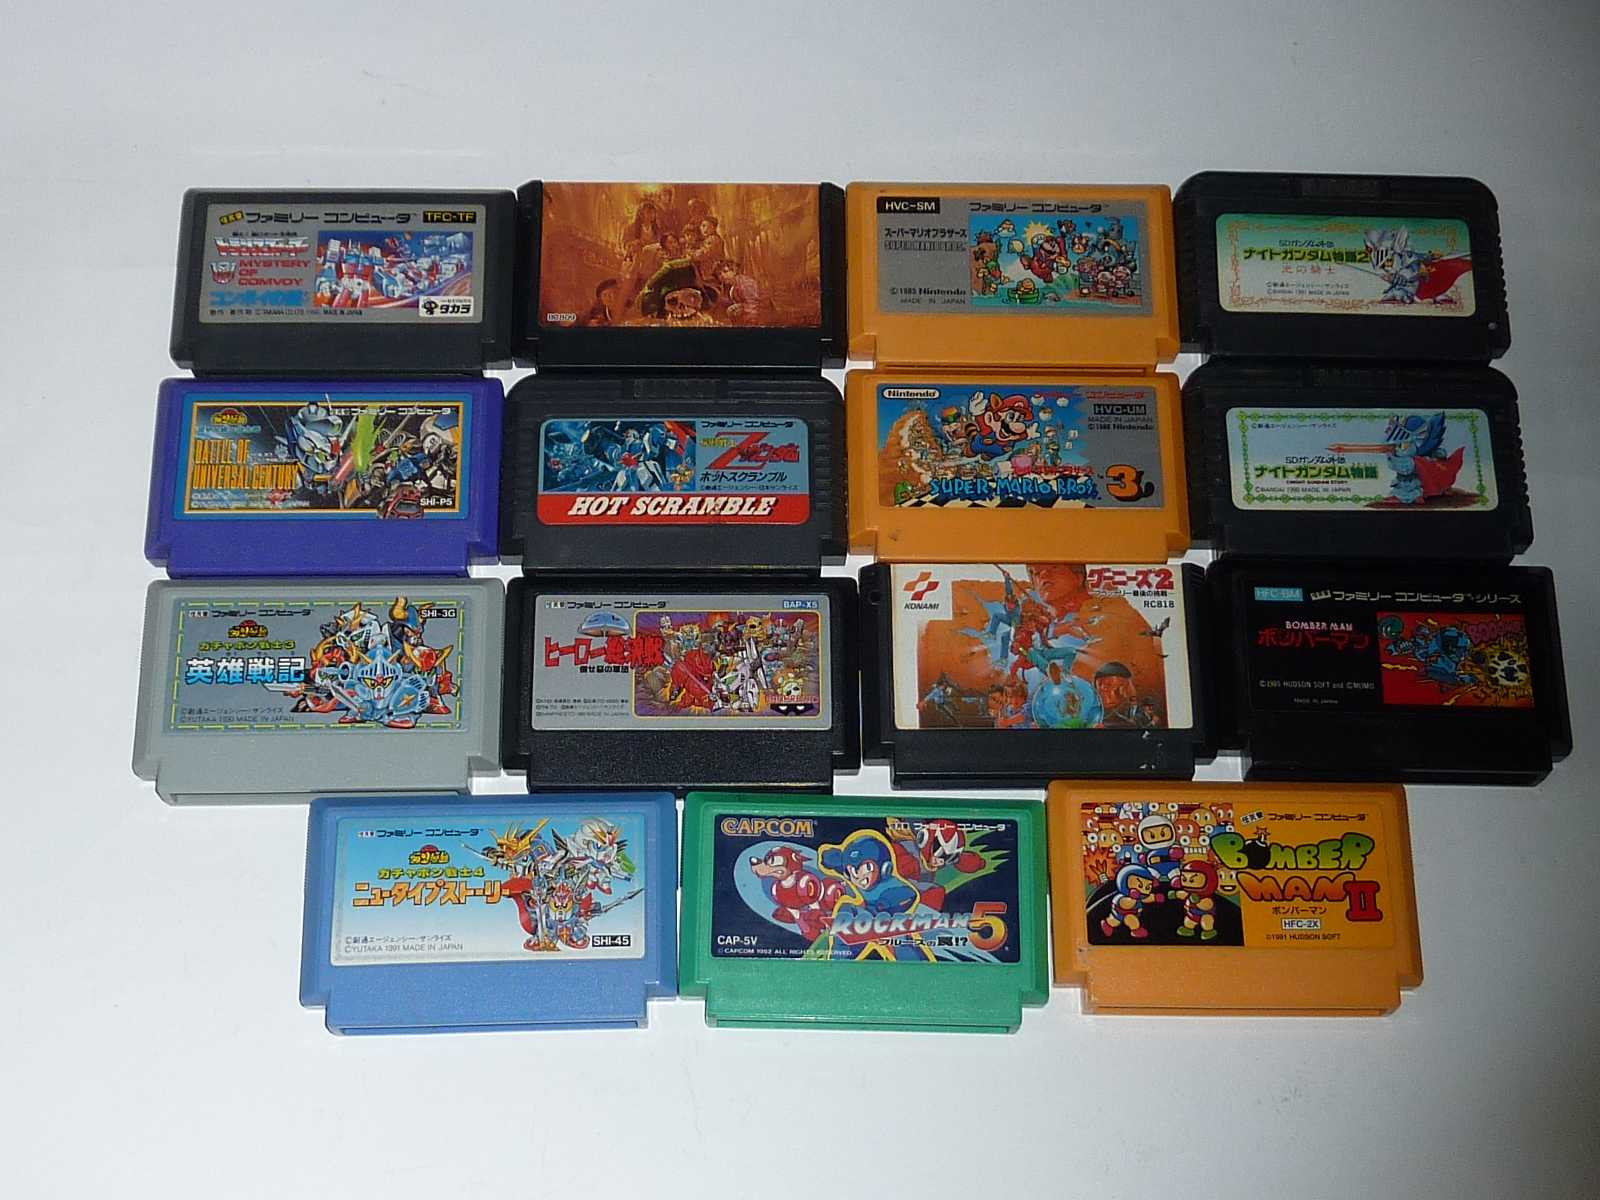 [FC] Rockman 5 + Bomber man 2 etc... (15 games Set) Loose